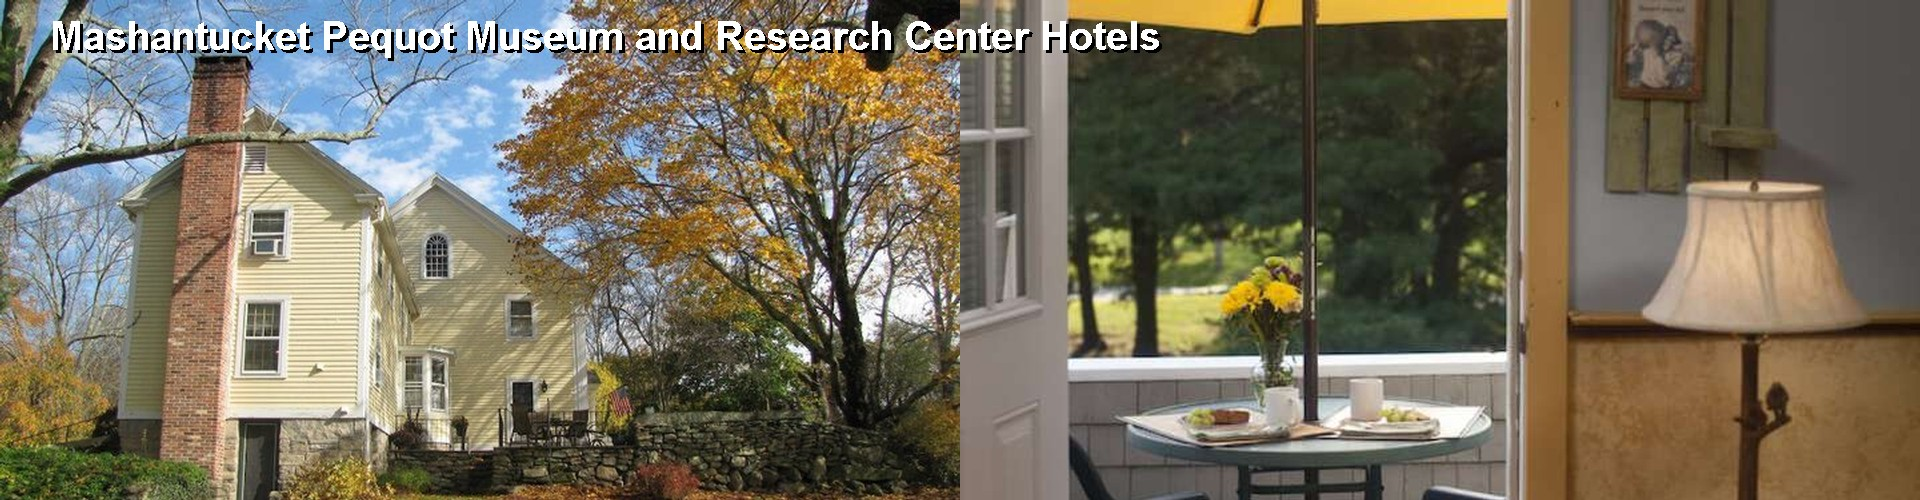 5 Best Hotels near Mashantucket Pequot Museum and Research Center